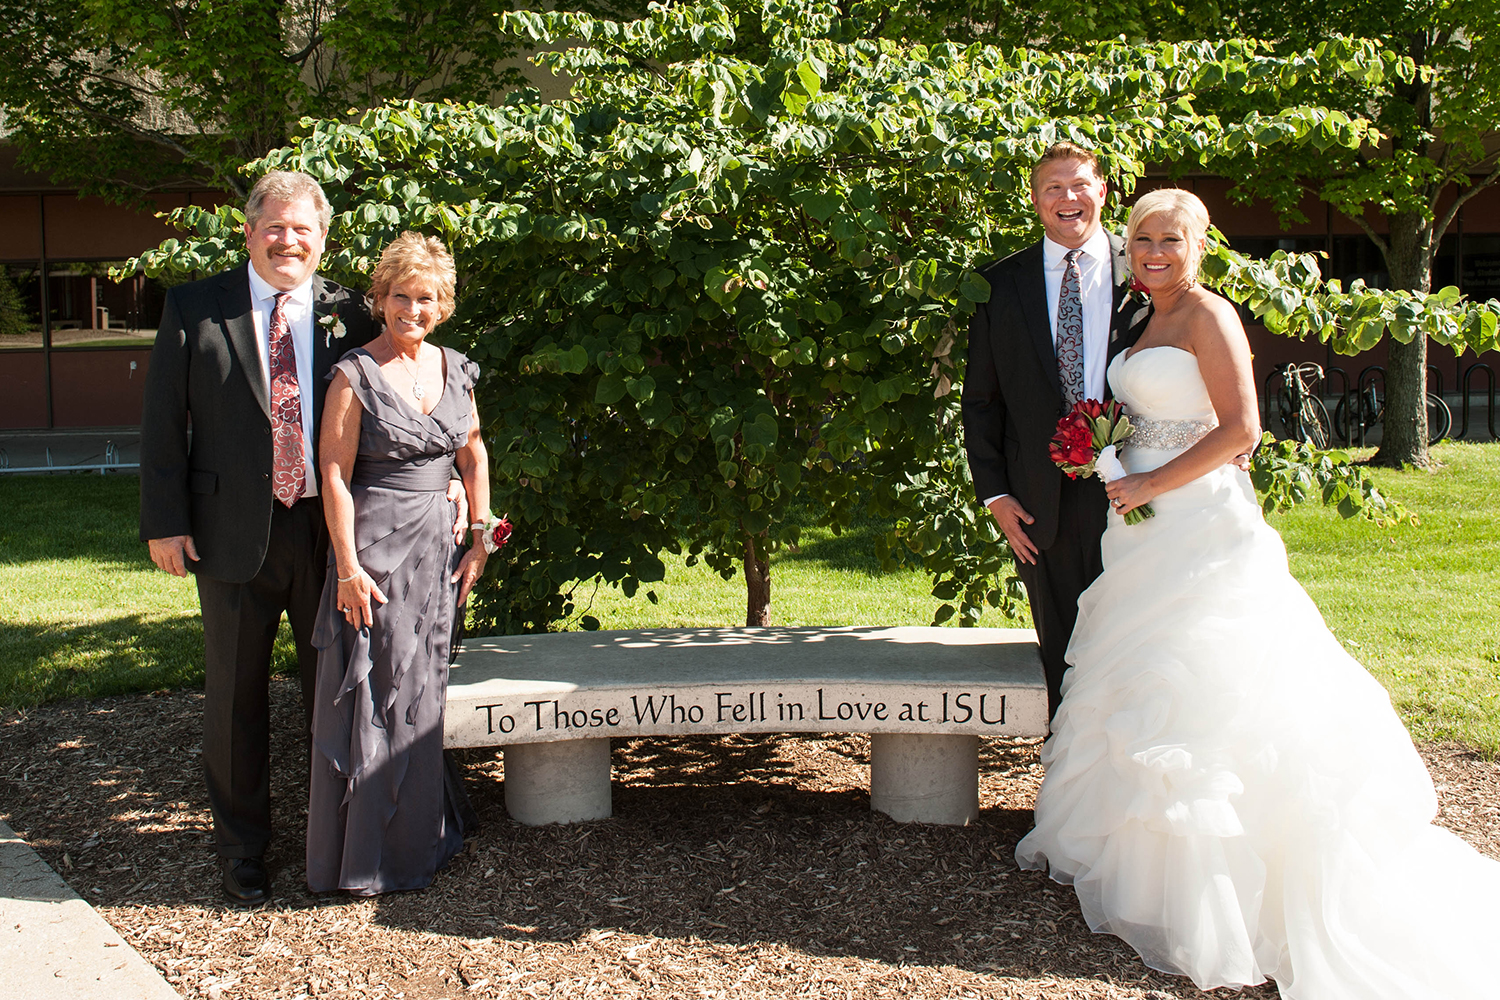 Two ISU couples pose at the bench